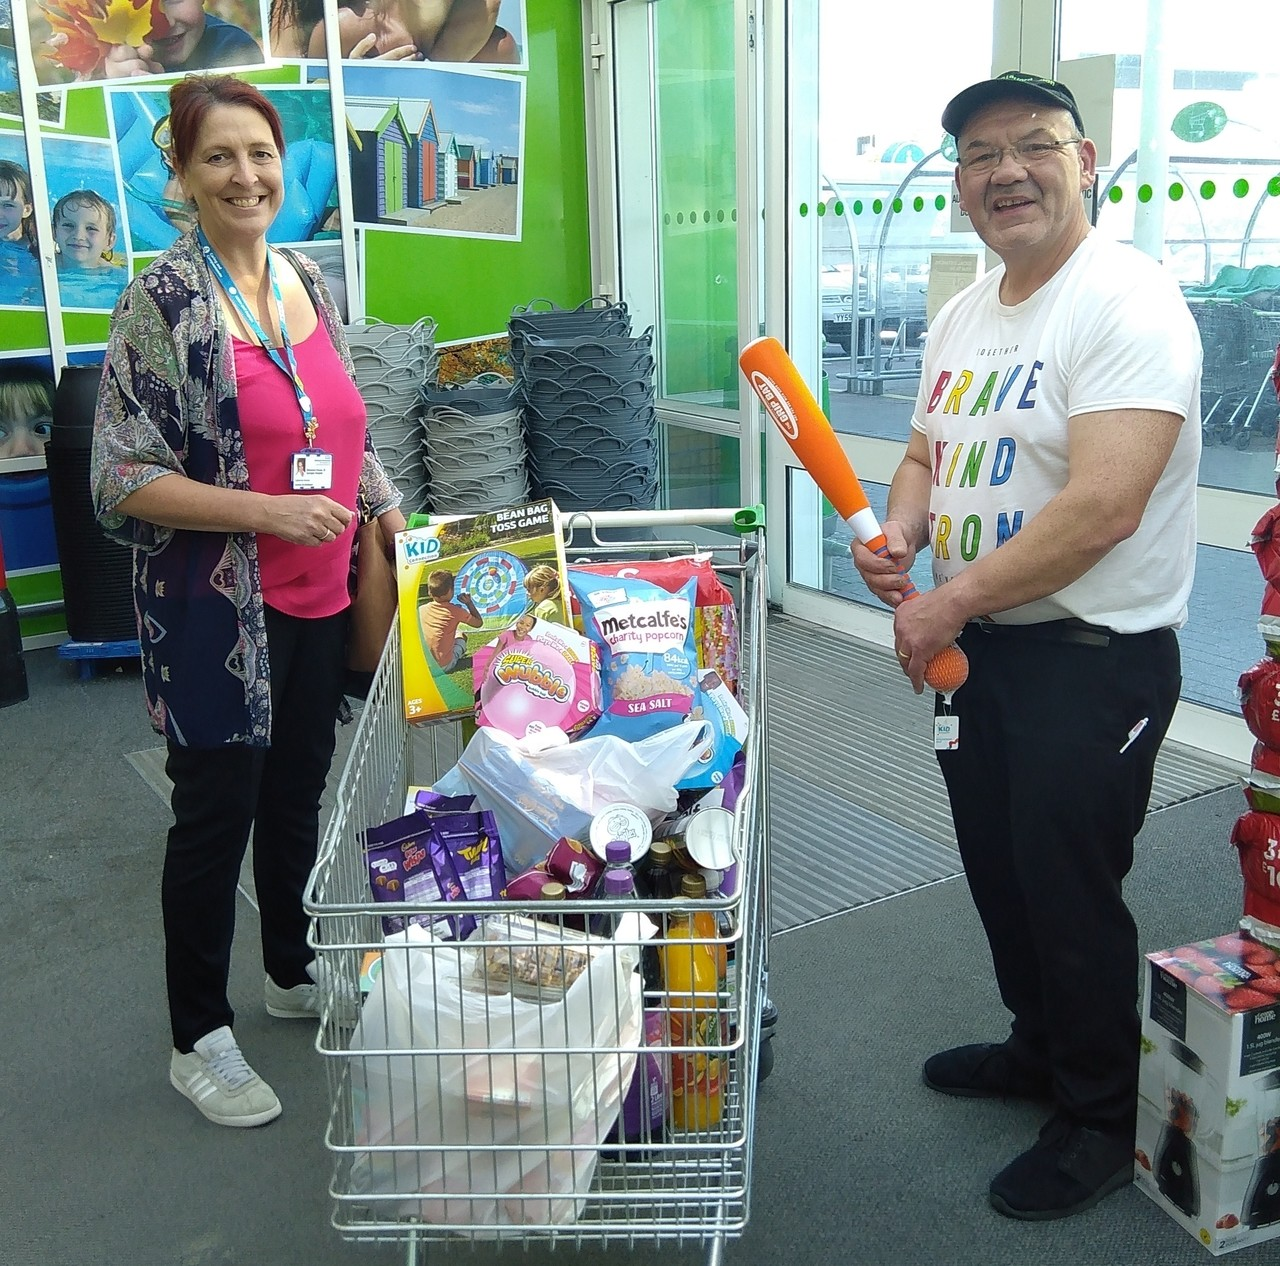 Stafford helps St George's | Asda Stafford